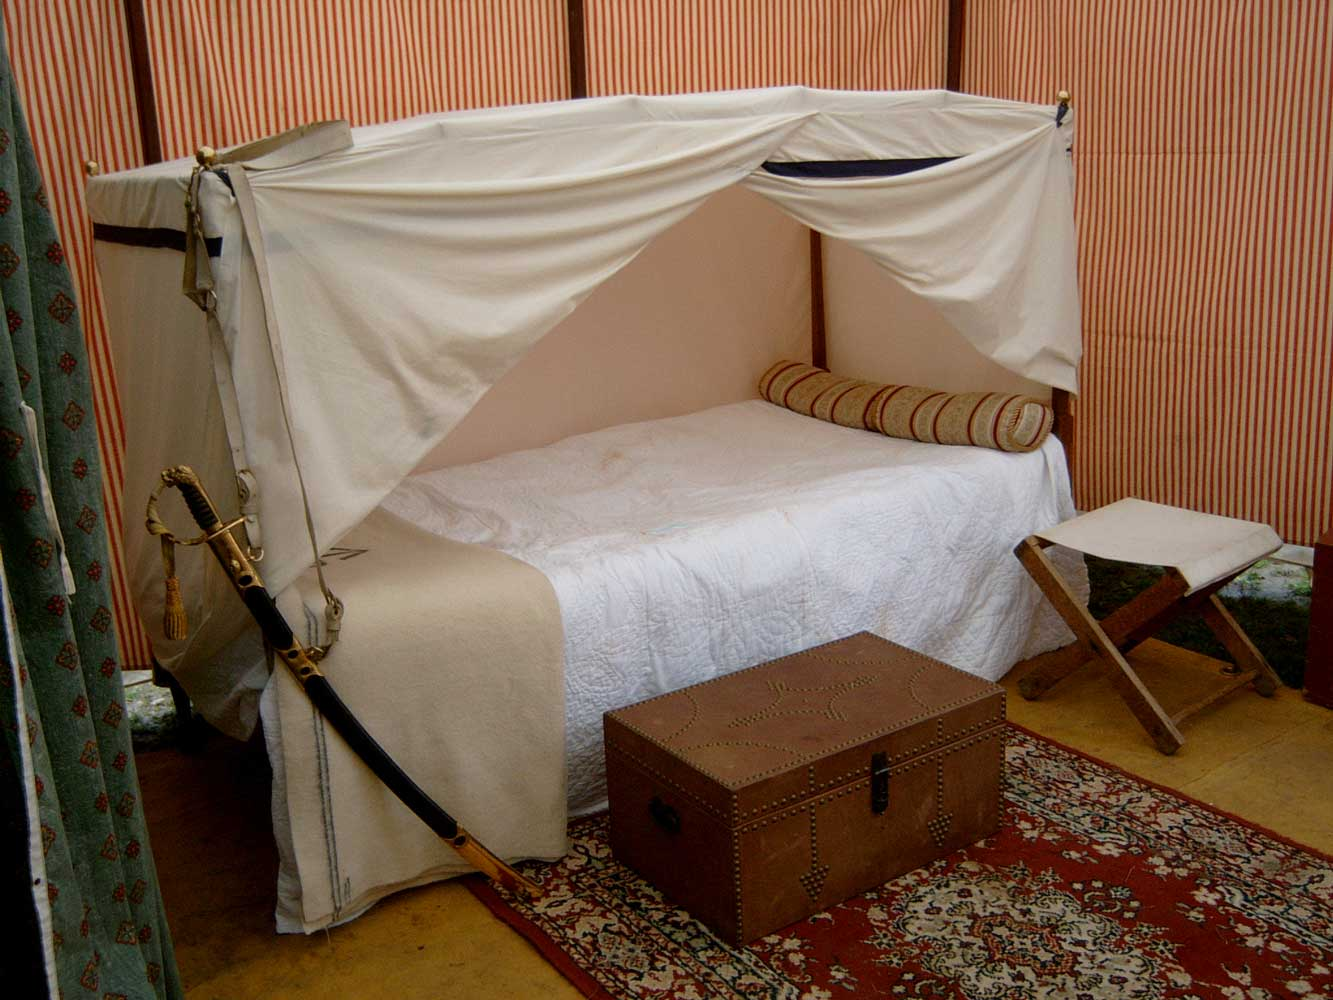 General's Folding Campaign Bed